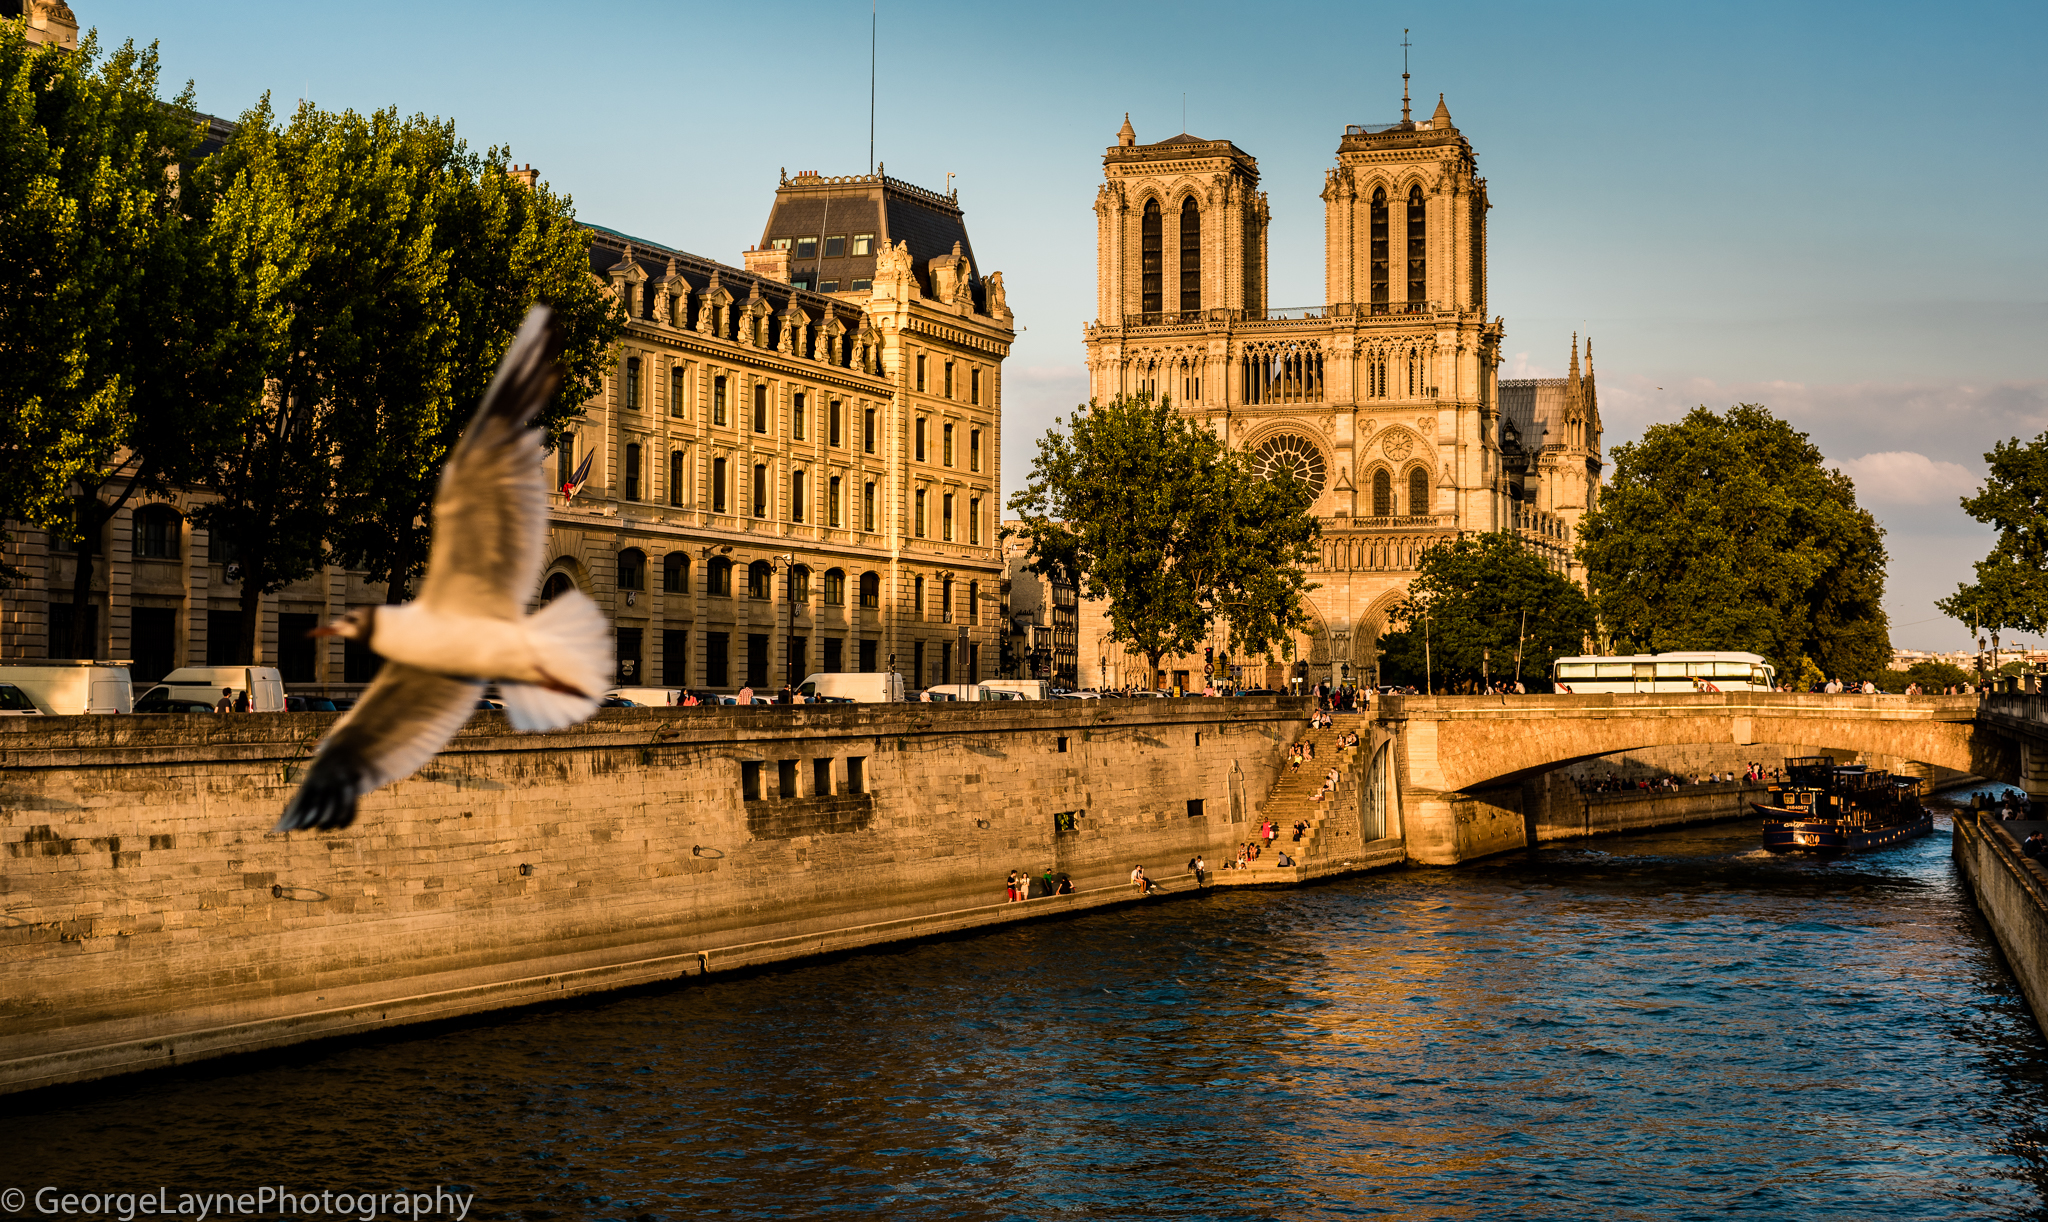 My first sight of Notre-Dame